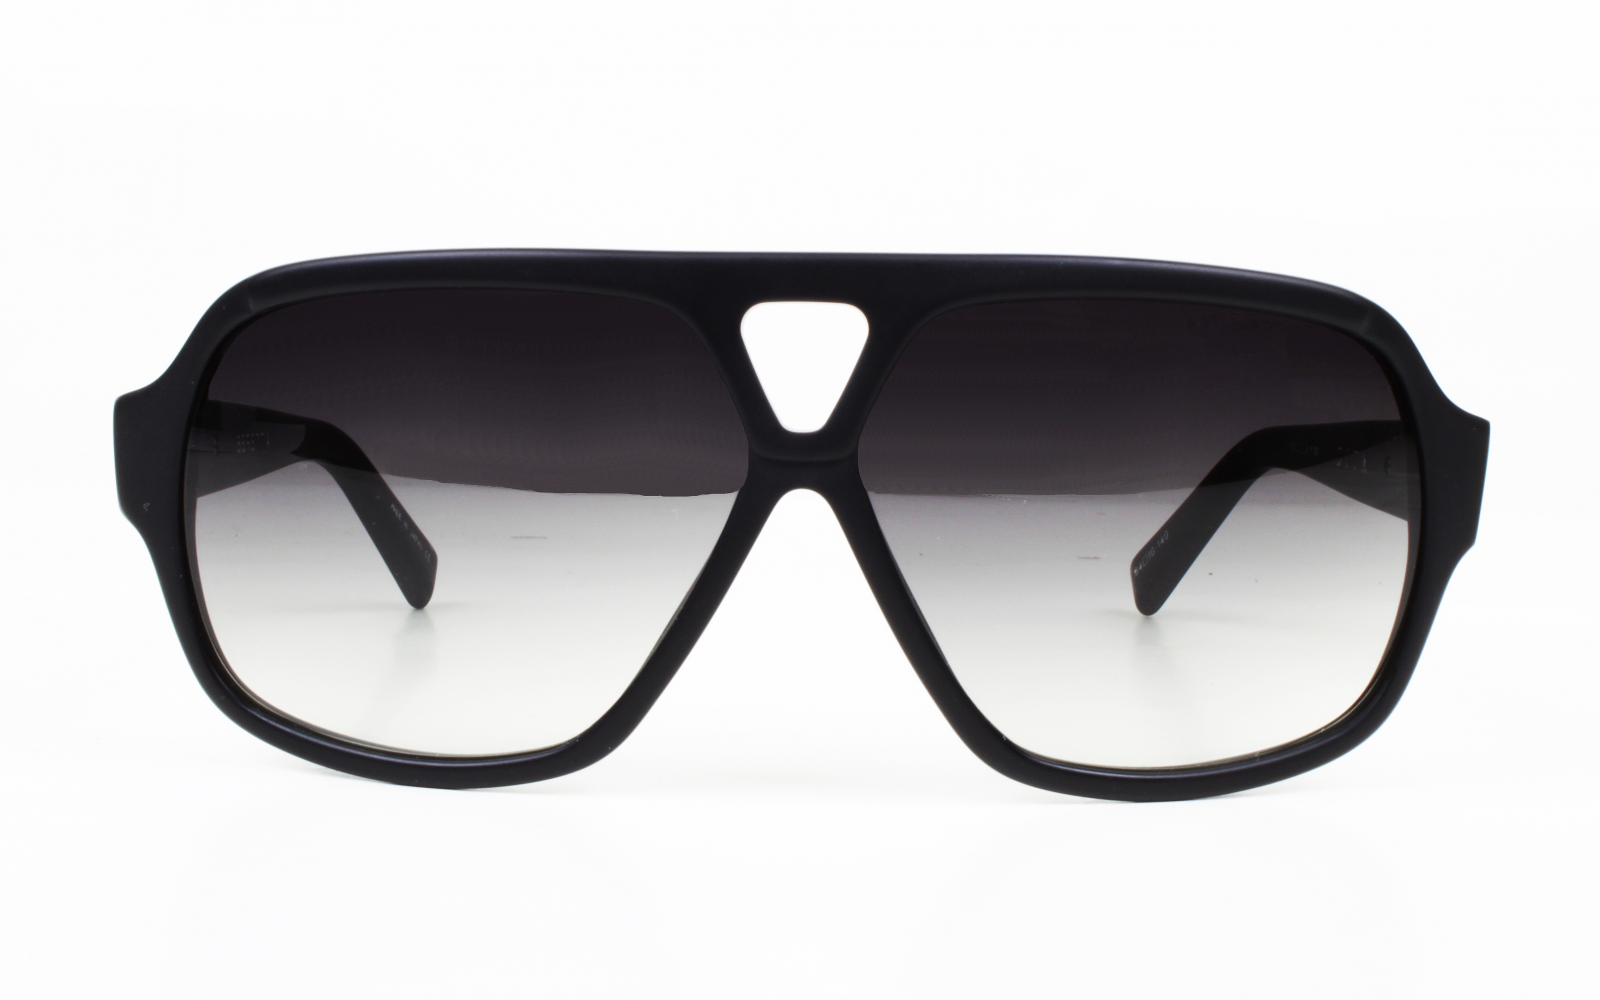 0c99d324d29 Dita Beretta 8300  sunglasses - Shop from the brilliant selection of  sunglasses made by SUNGLASSCURATOR.com